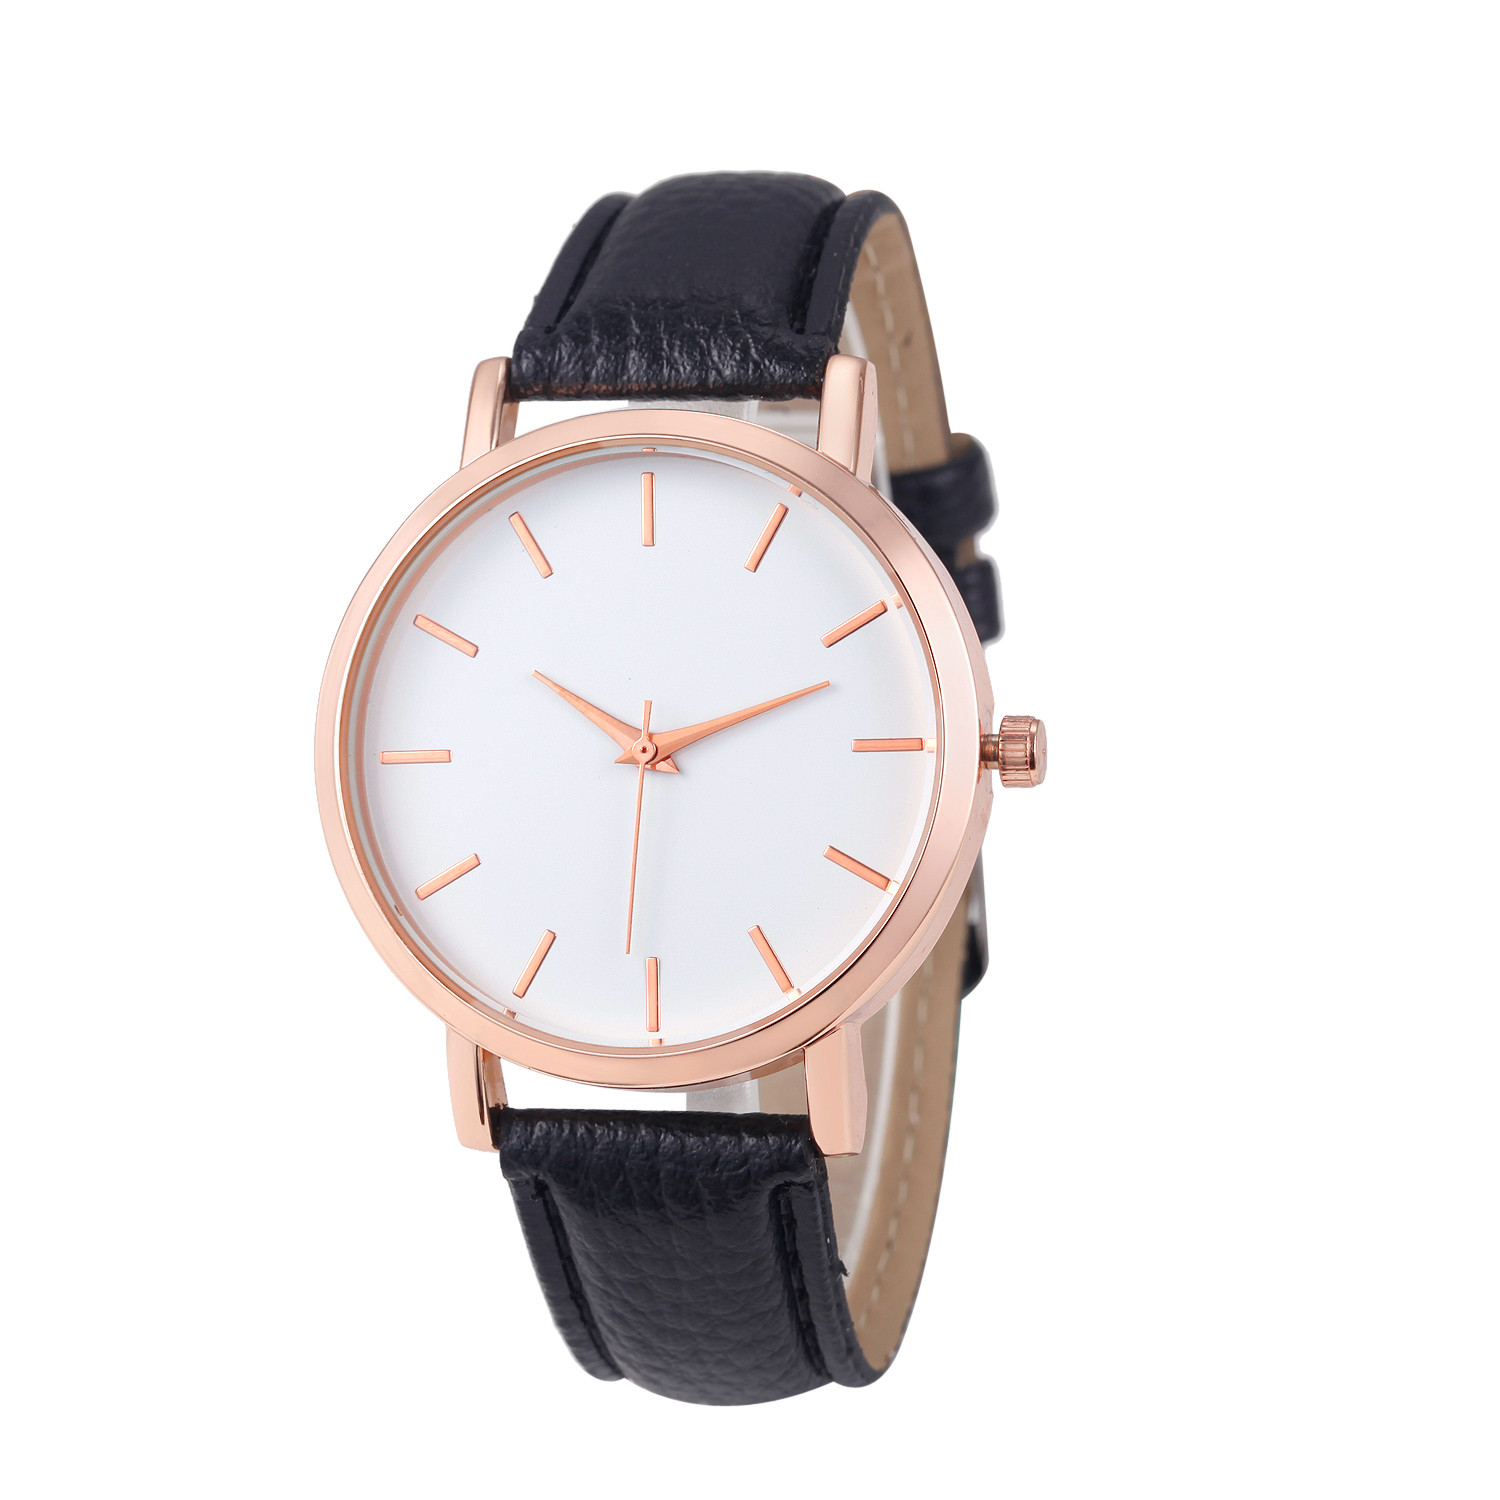 Fashion Lady Watch with Black Leather Strap